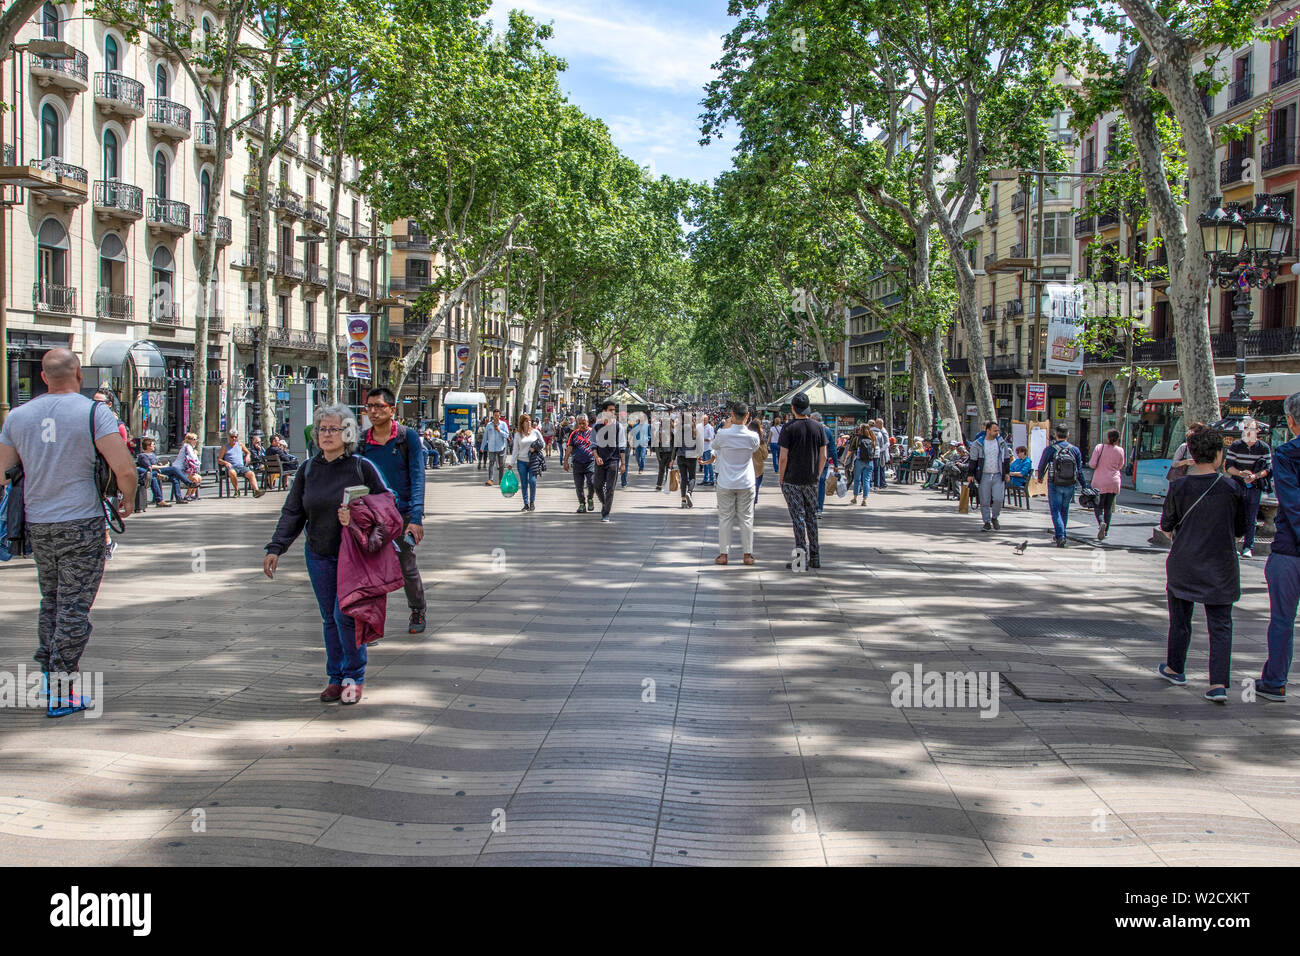 La Rambla, Barcelona, Catalunya, Spain.  We did not feel safe.  There where dubious teams on roller skates going up and down the street. - Stock Image